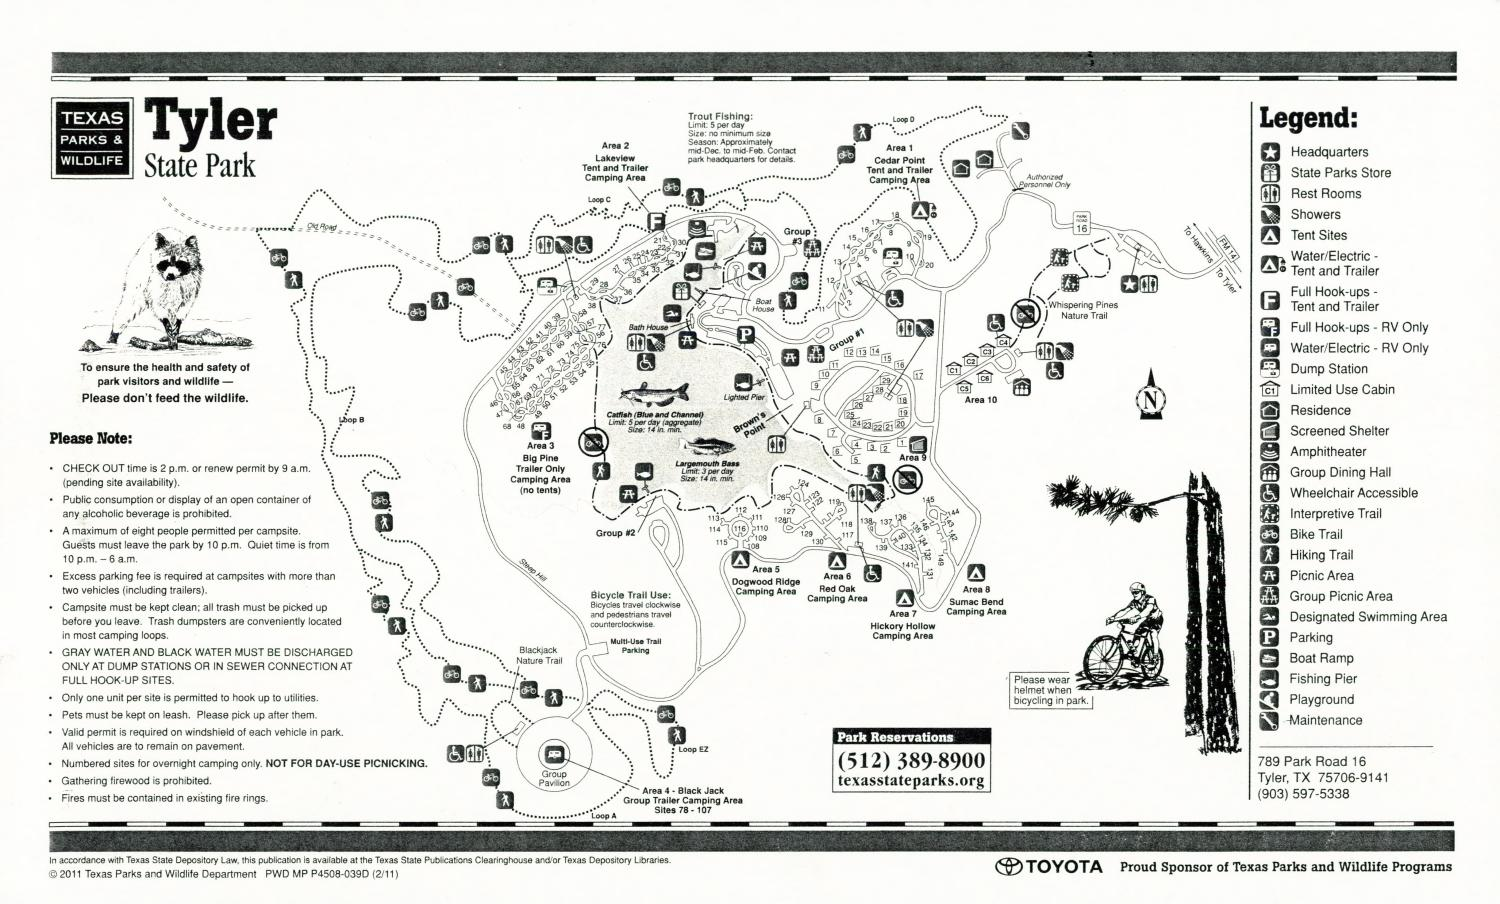 Tyler State Park, Map of the Tyler State Park outlining hiking trails and highlighting activities, facilities, and other features such as bathrooms, lodgings, water/electric, etc. It also contains general information for the park and for the Texas Parks and Wildlife Department.,